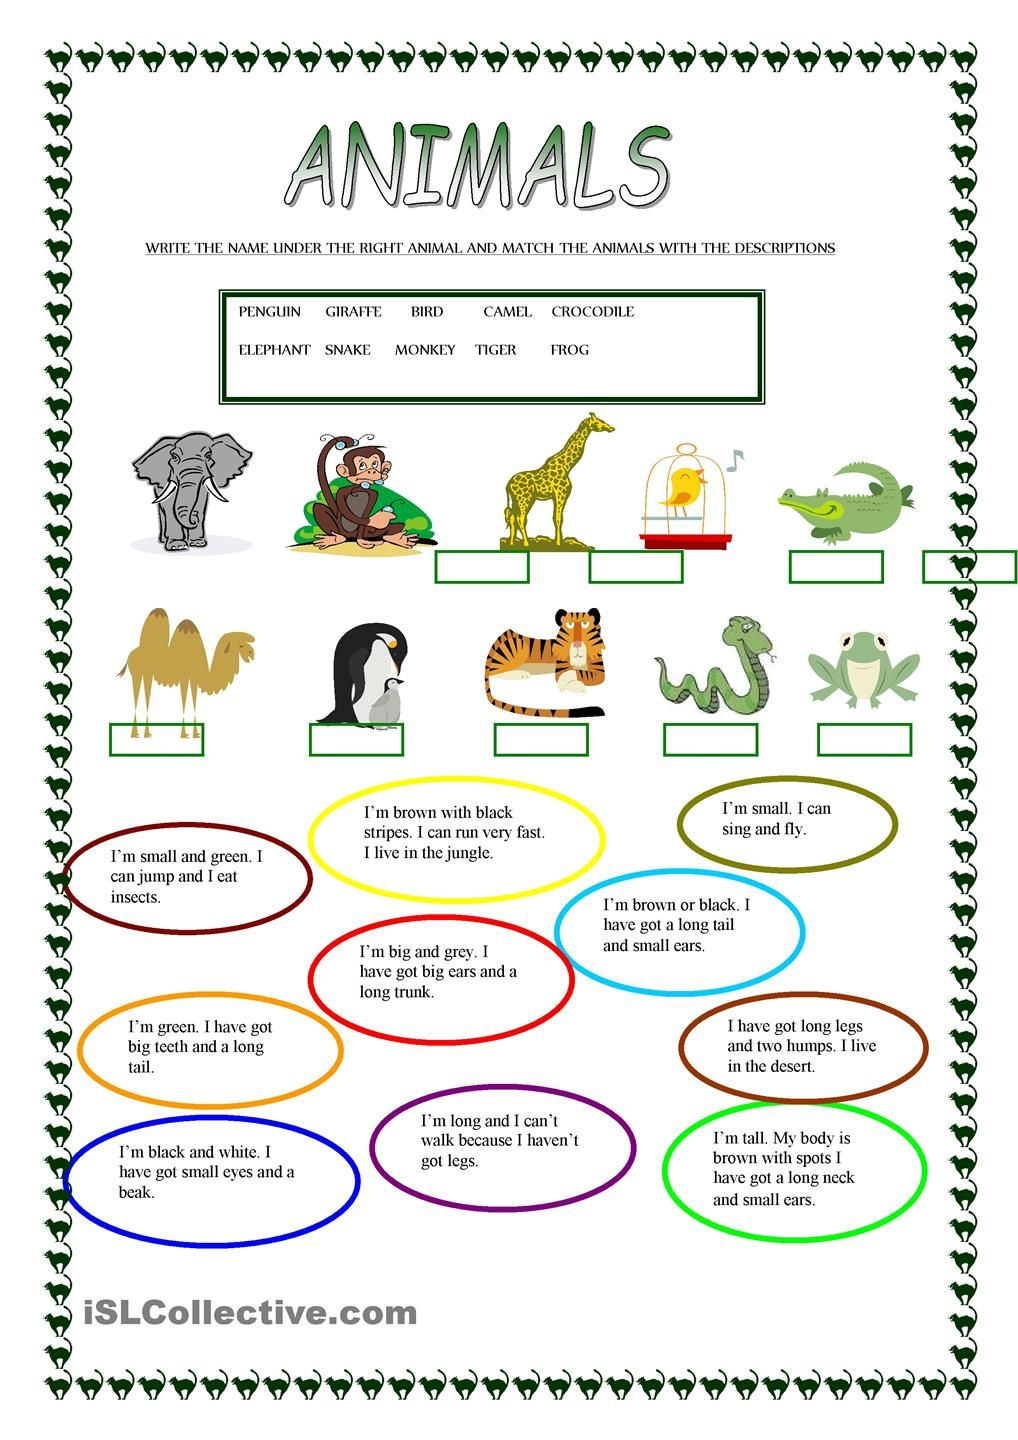 Animals | Free Esl Worksheets | Teachers Resources | Pinterest | Free Printable Esl Worksheets